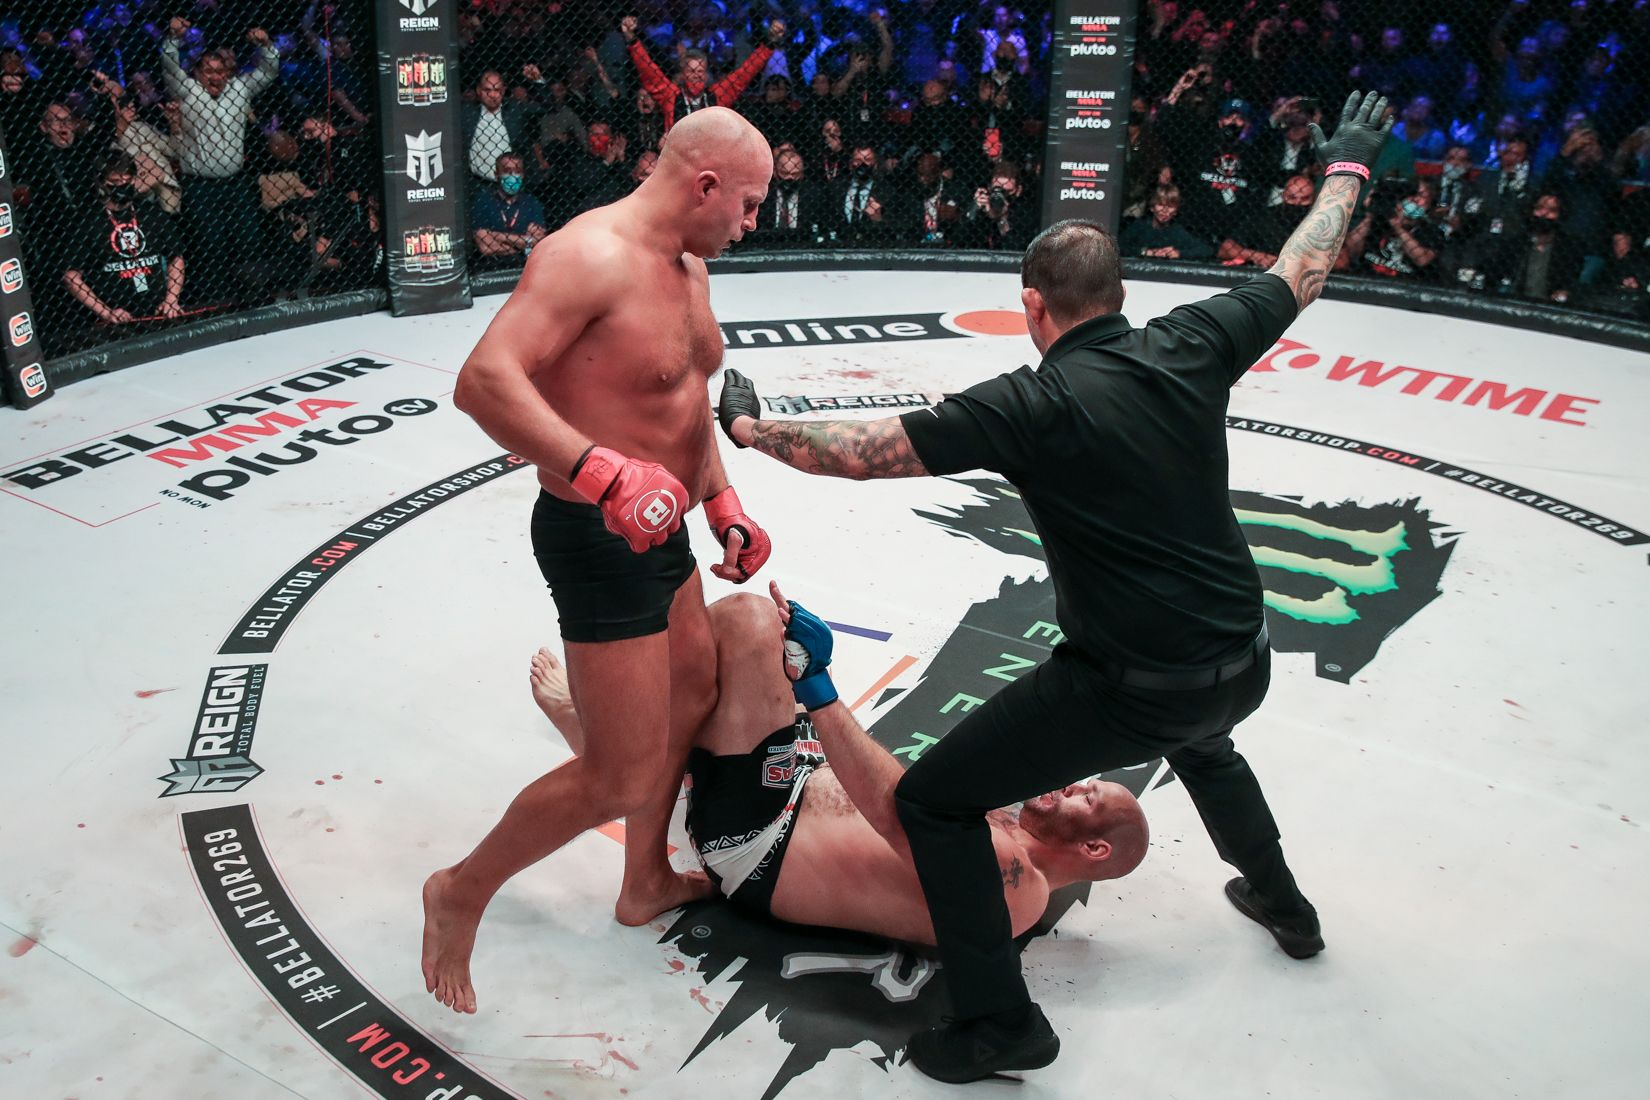 Fedor Emelianenko knocked out Tim Johnson at Bellator 269 in Moscow.